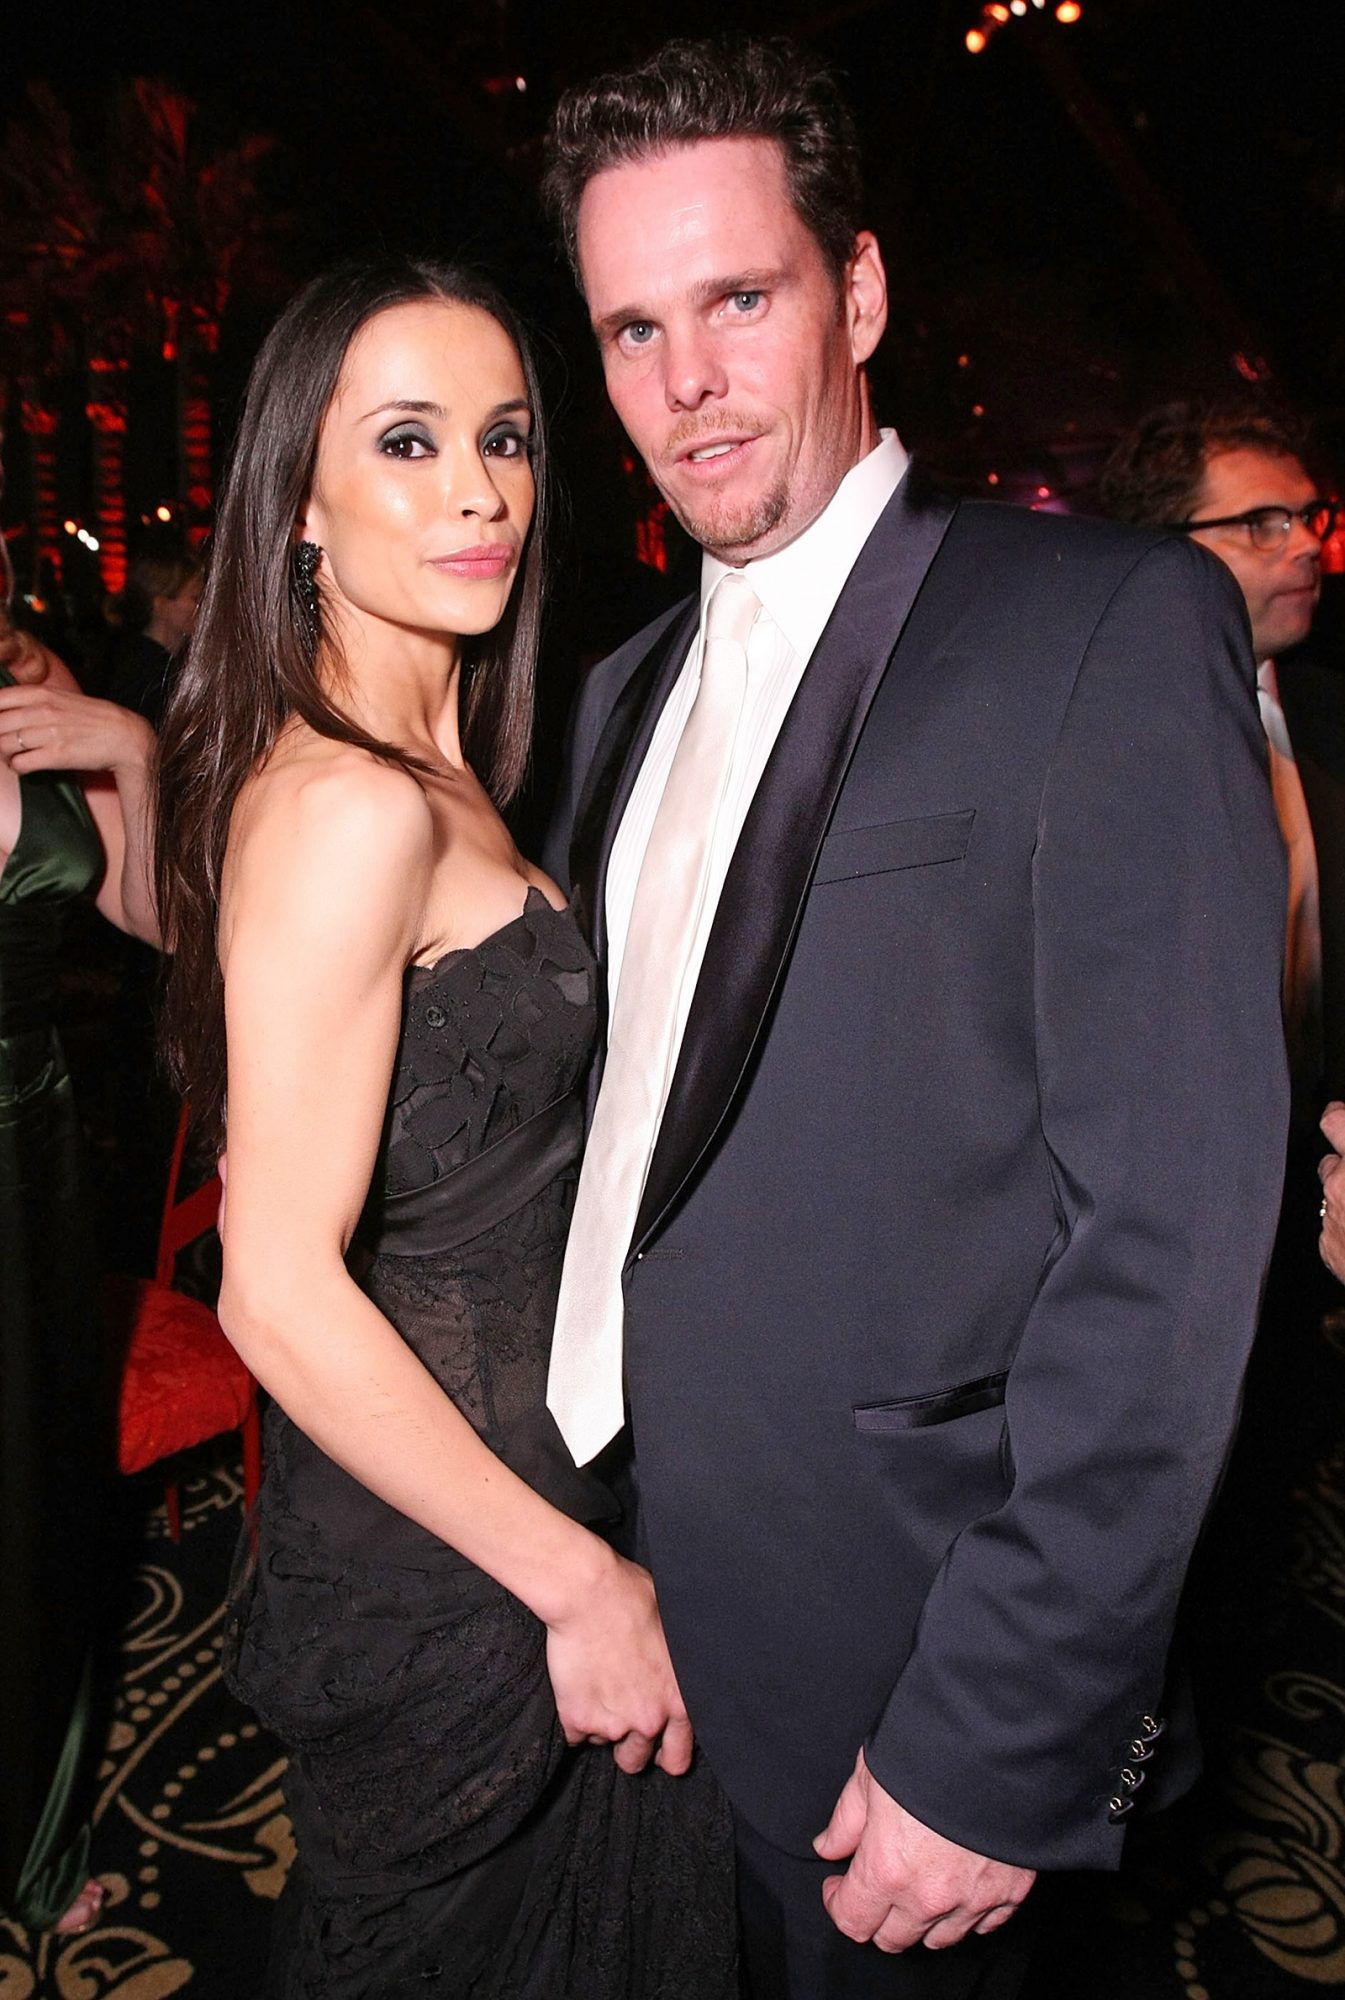 Kevin Dillon and wife Jane Stuart attend HBO's post Emmy Awards reception at the Pacific Design Center on September 20, 2009 in West Hollywood, California